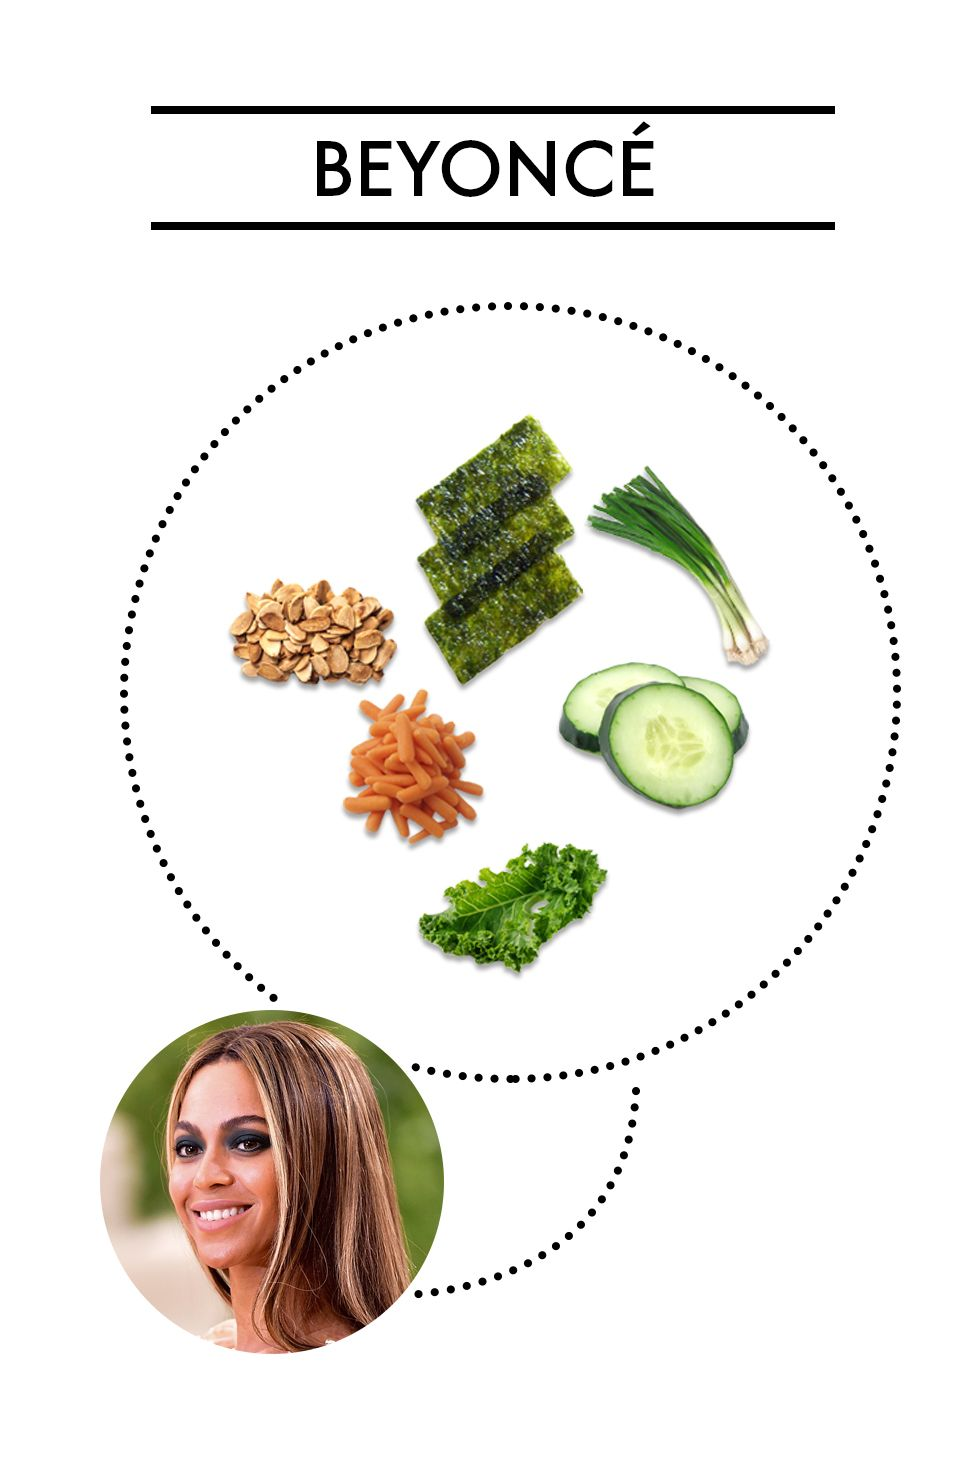 """<p><strong>Ingredients:</strong> Kale, cucumber, carrots, nori sheets, cilantro basil scallions, toasted almonds</p><p>Back when Beyoncé was doing the <a href=""""http://greatideas.people.com/2013/12/11/beyonce-jayz-22-days-vegan-kale-salad-recipe/"""" target=""""_blank"""">22 Days Vegan</a> plan, this kale and seaweed dish from Café Gratitude was one of her go-tos. For dressing, she had a mix of tahini, lemon, olive oil, garlic, and sesame oil.</p>"""